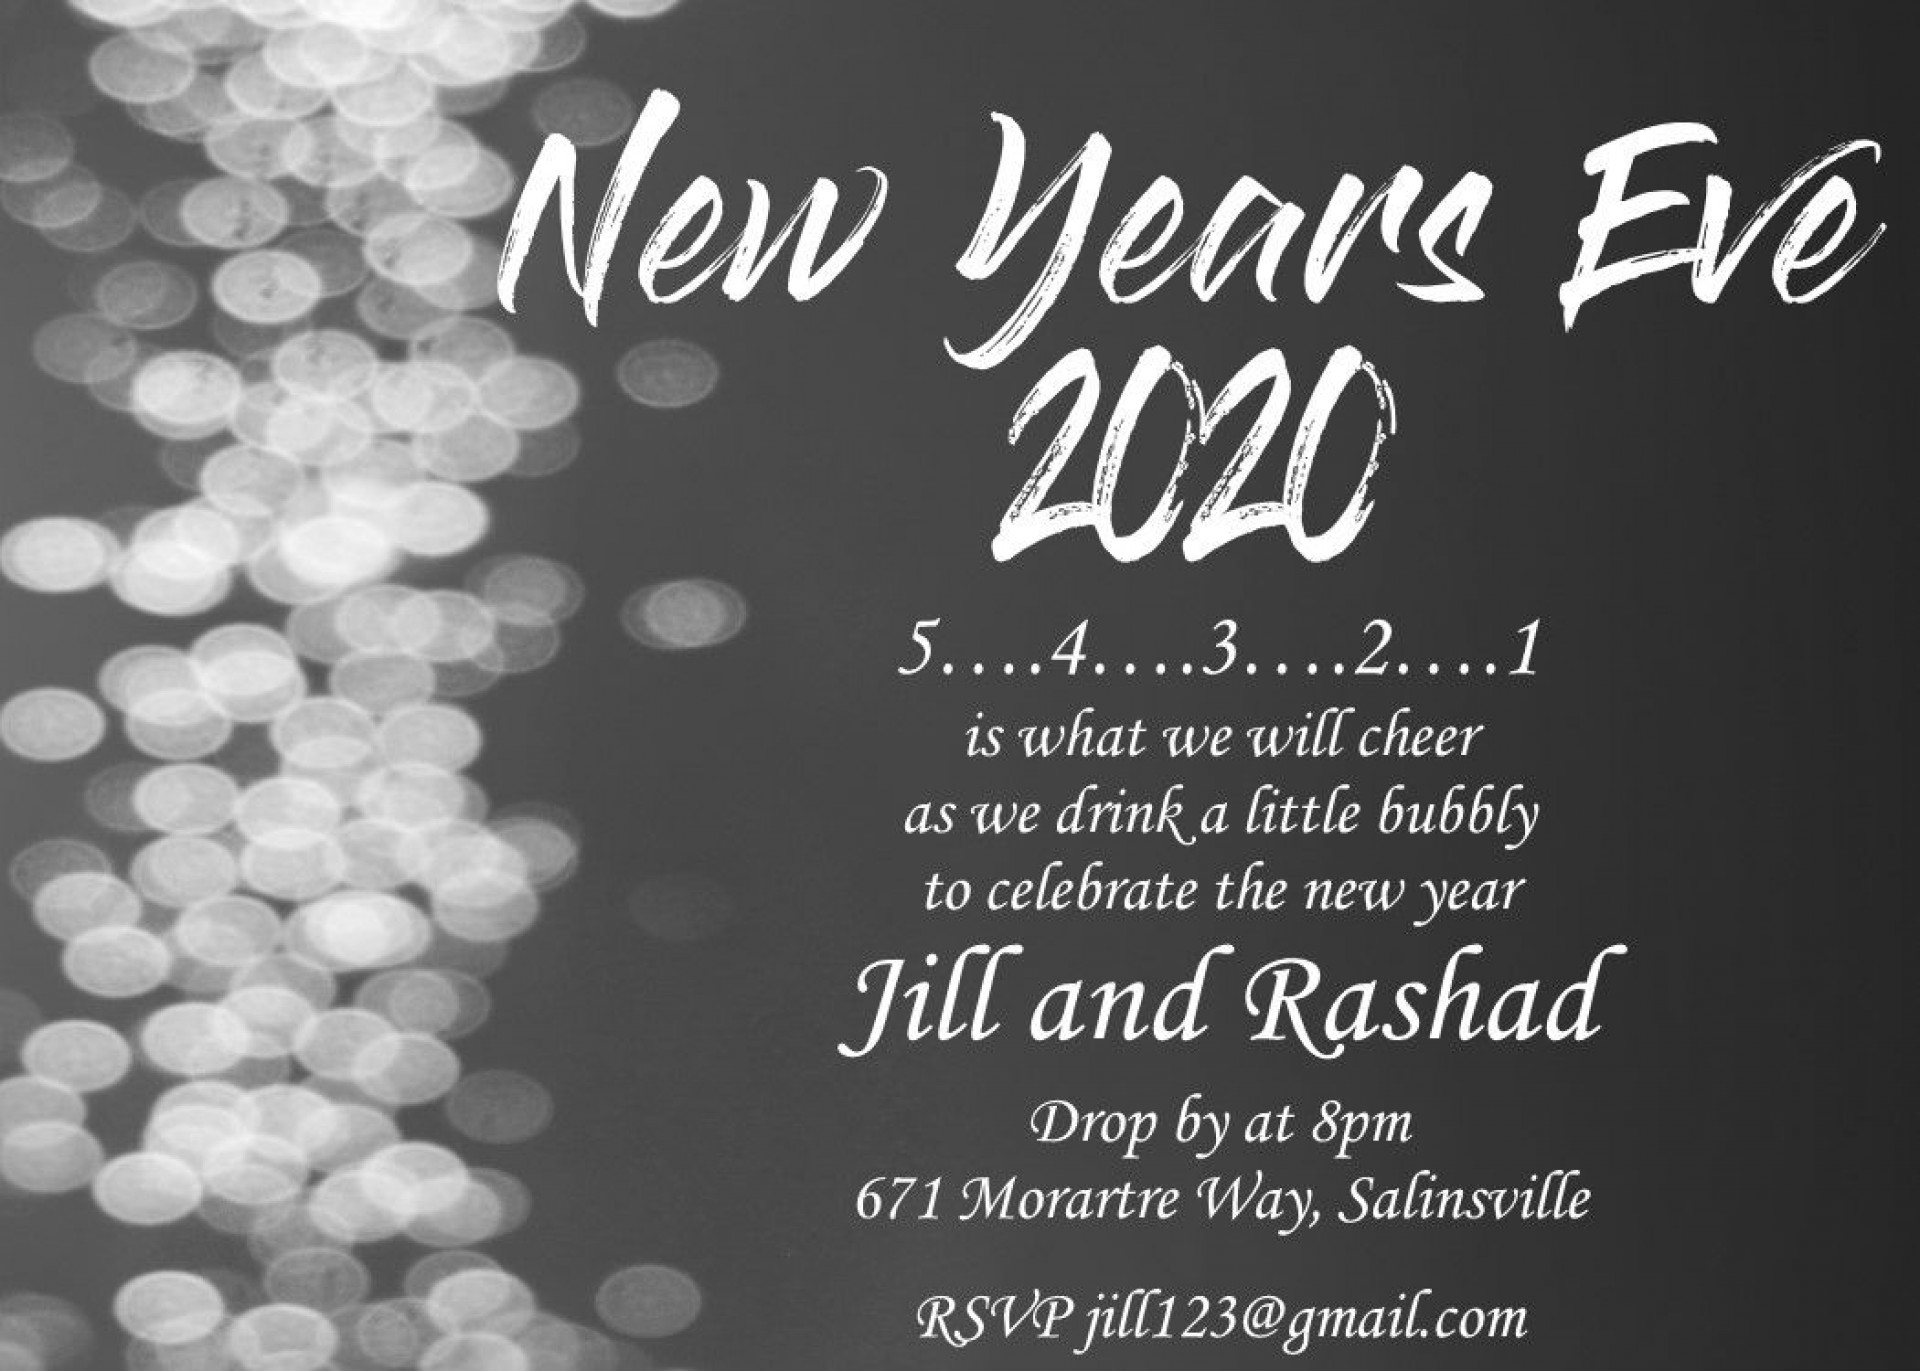 008 Unforgettable New Year Eve Invitation Template Concept  Party Free Word1920